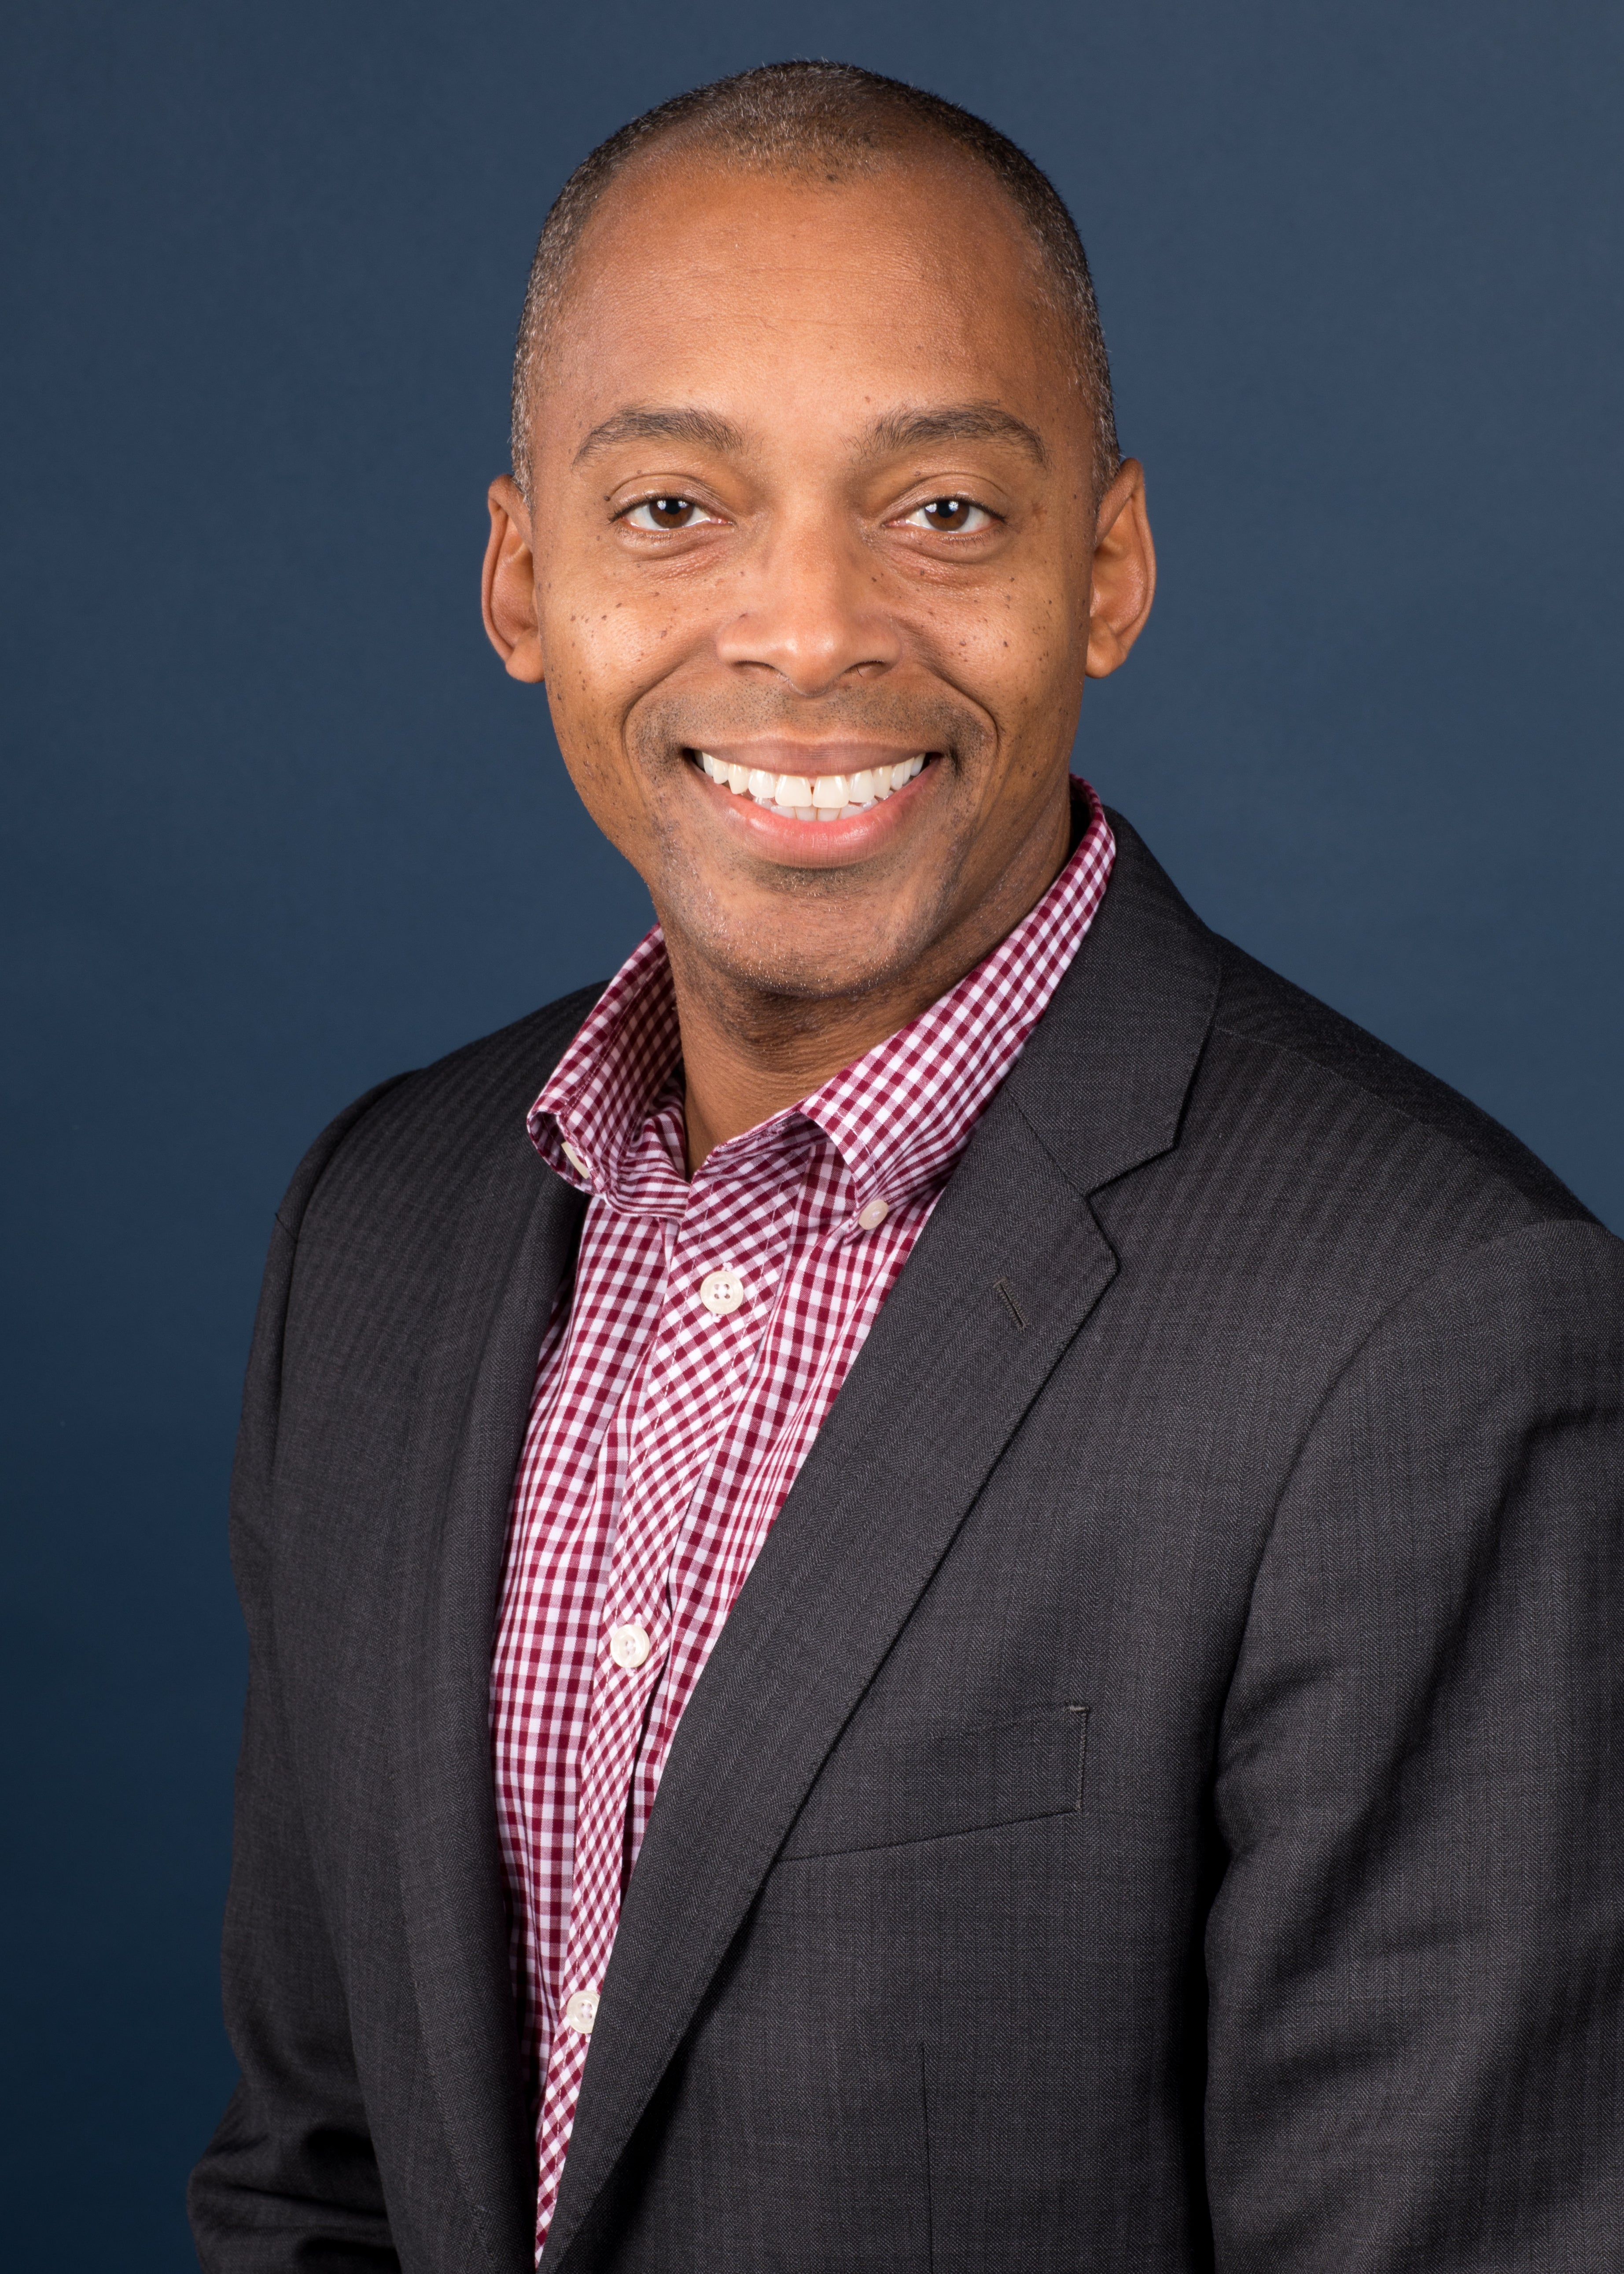 A smiling Black man in a checked shirt and blazer.